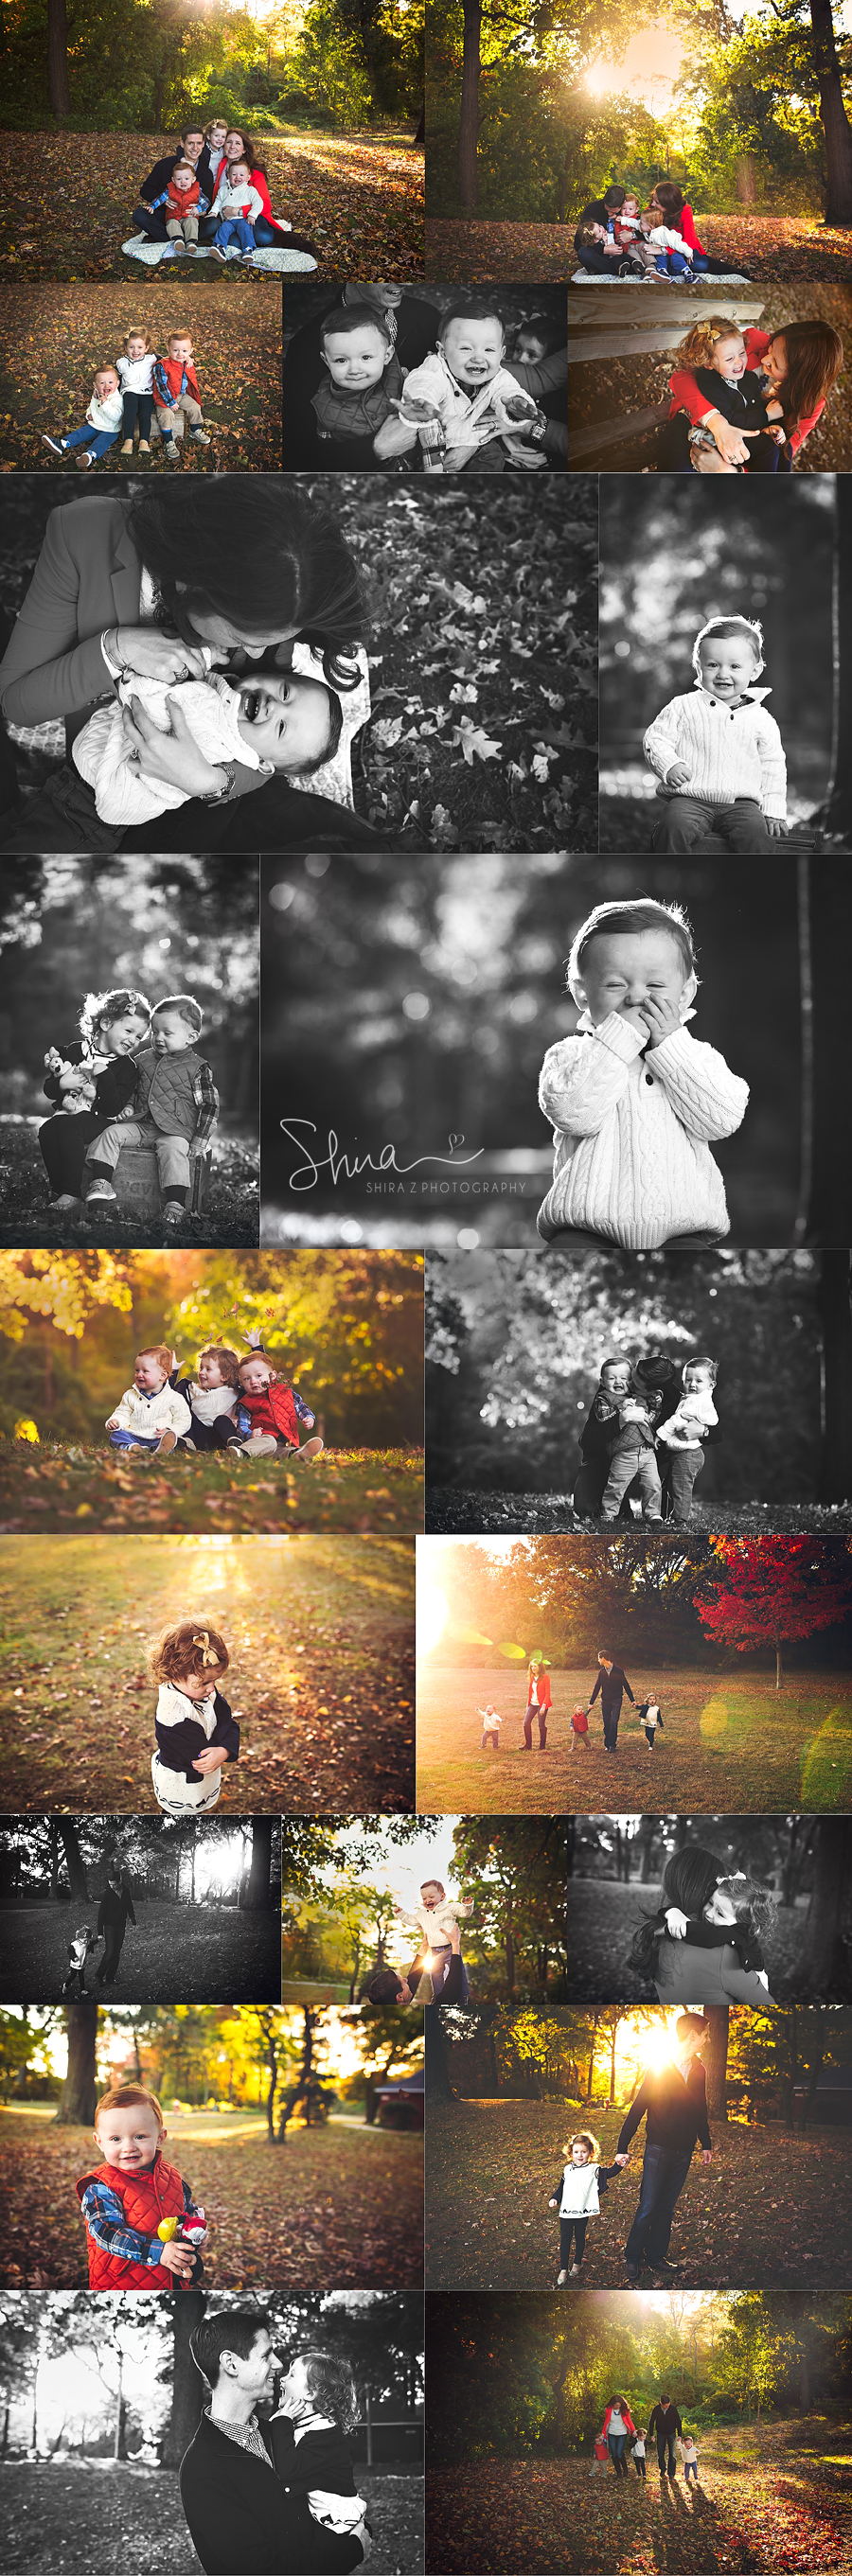 collage of Long Island family photos with three children outdoors in the Fall